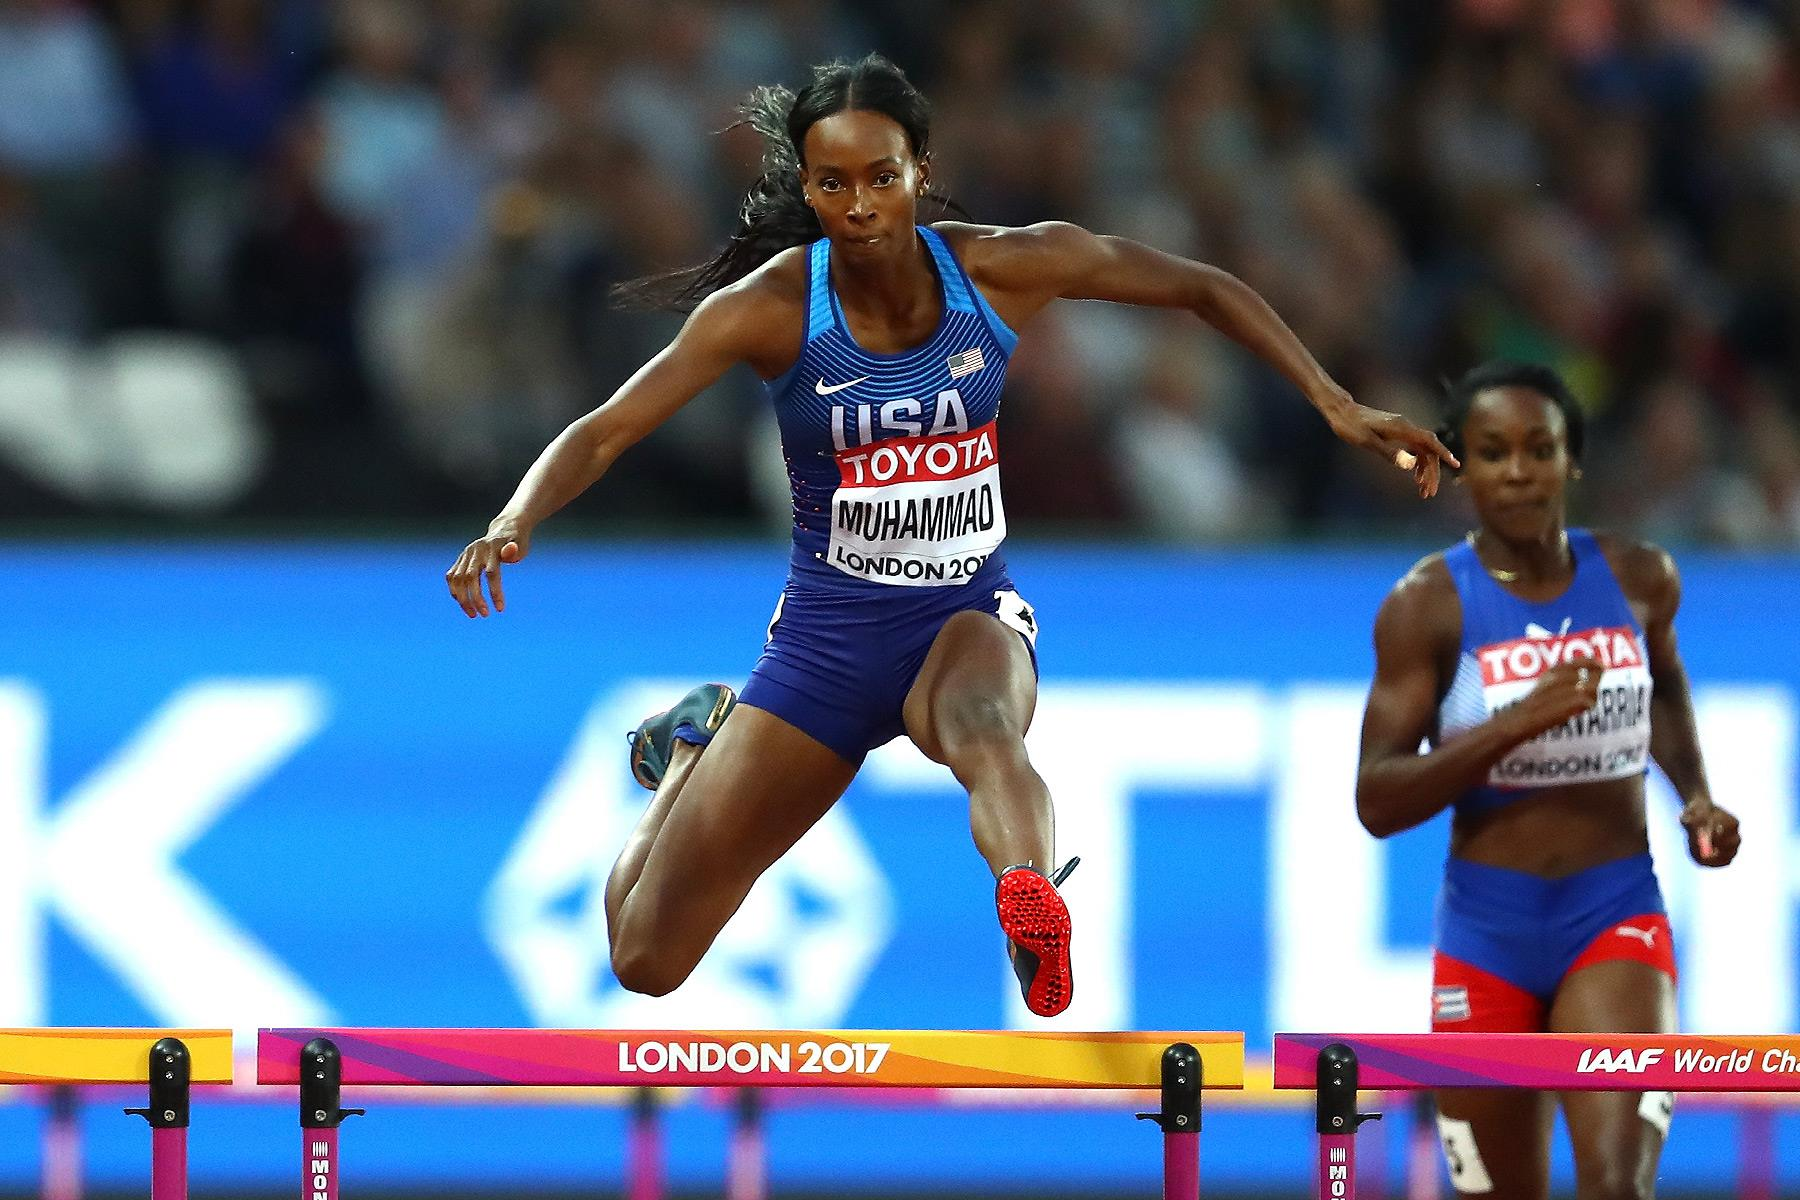 Dalilah Muhammad in action at the IAAF World Championships London 2017 (Getty Images)